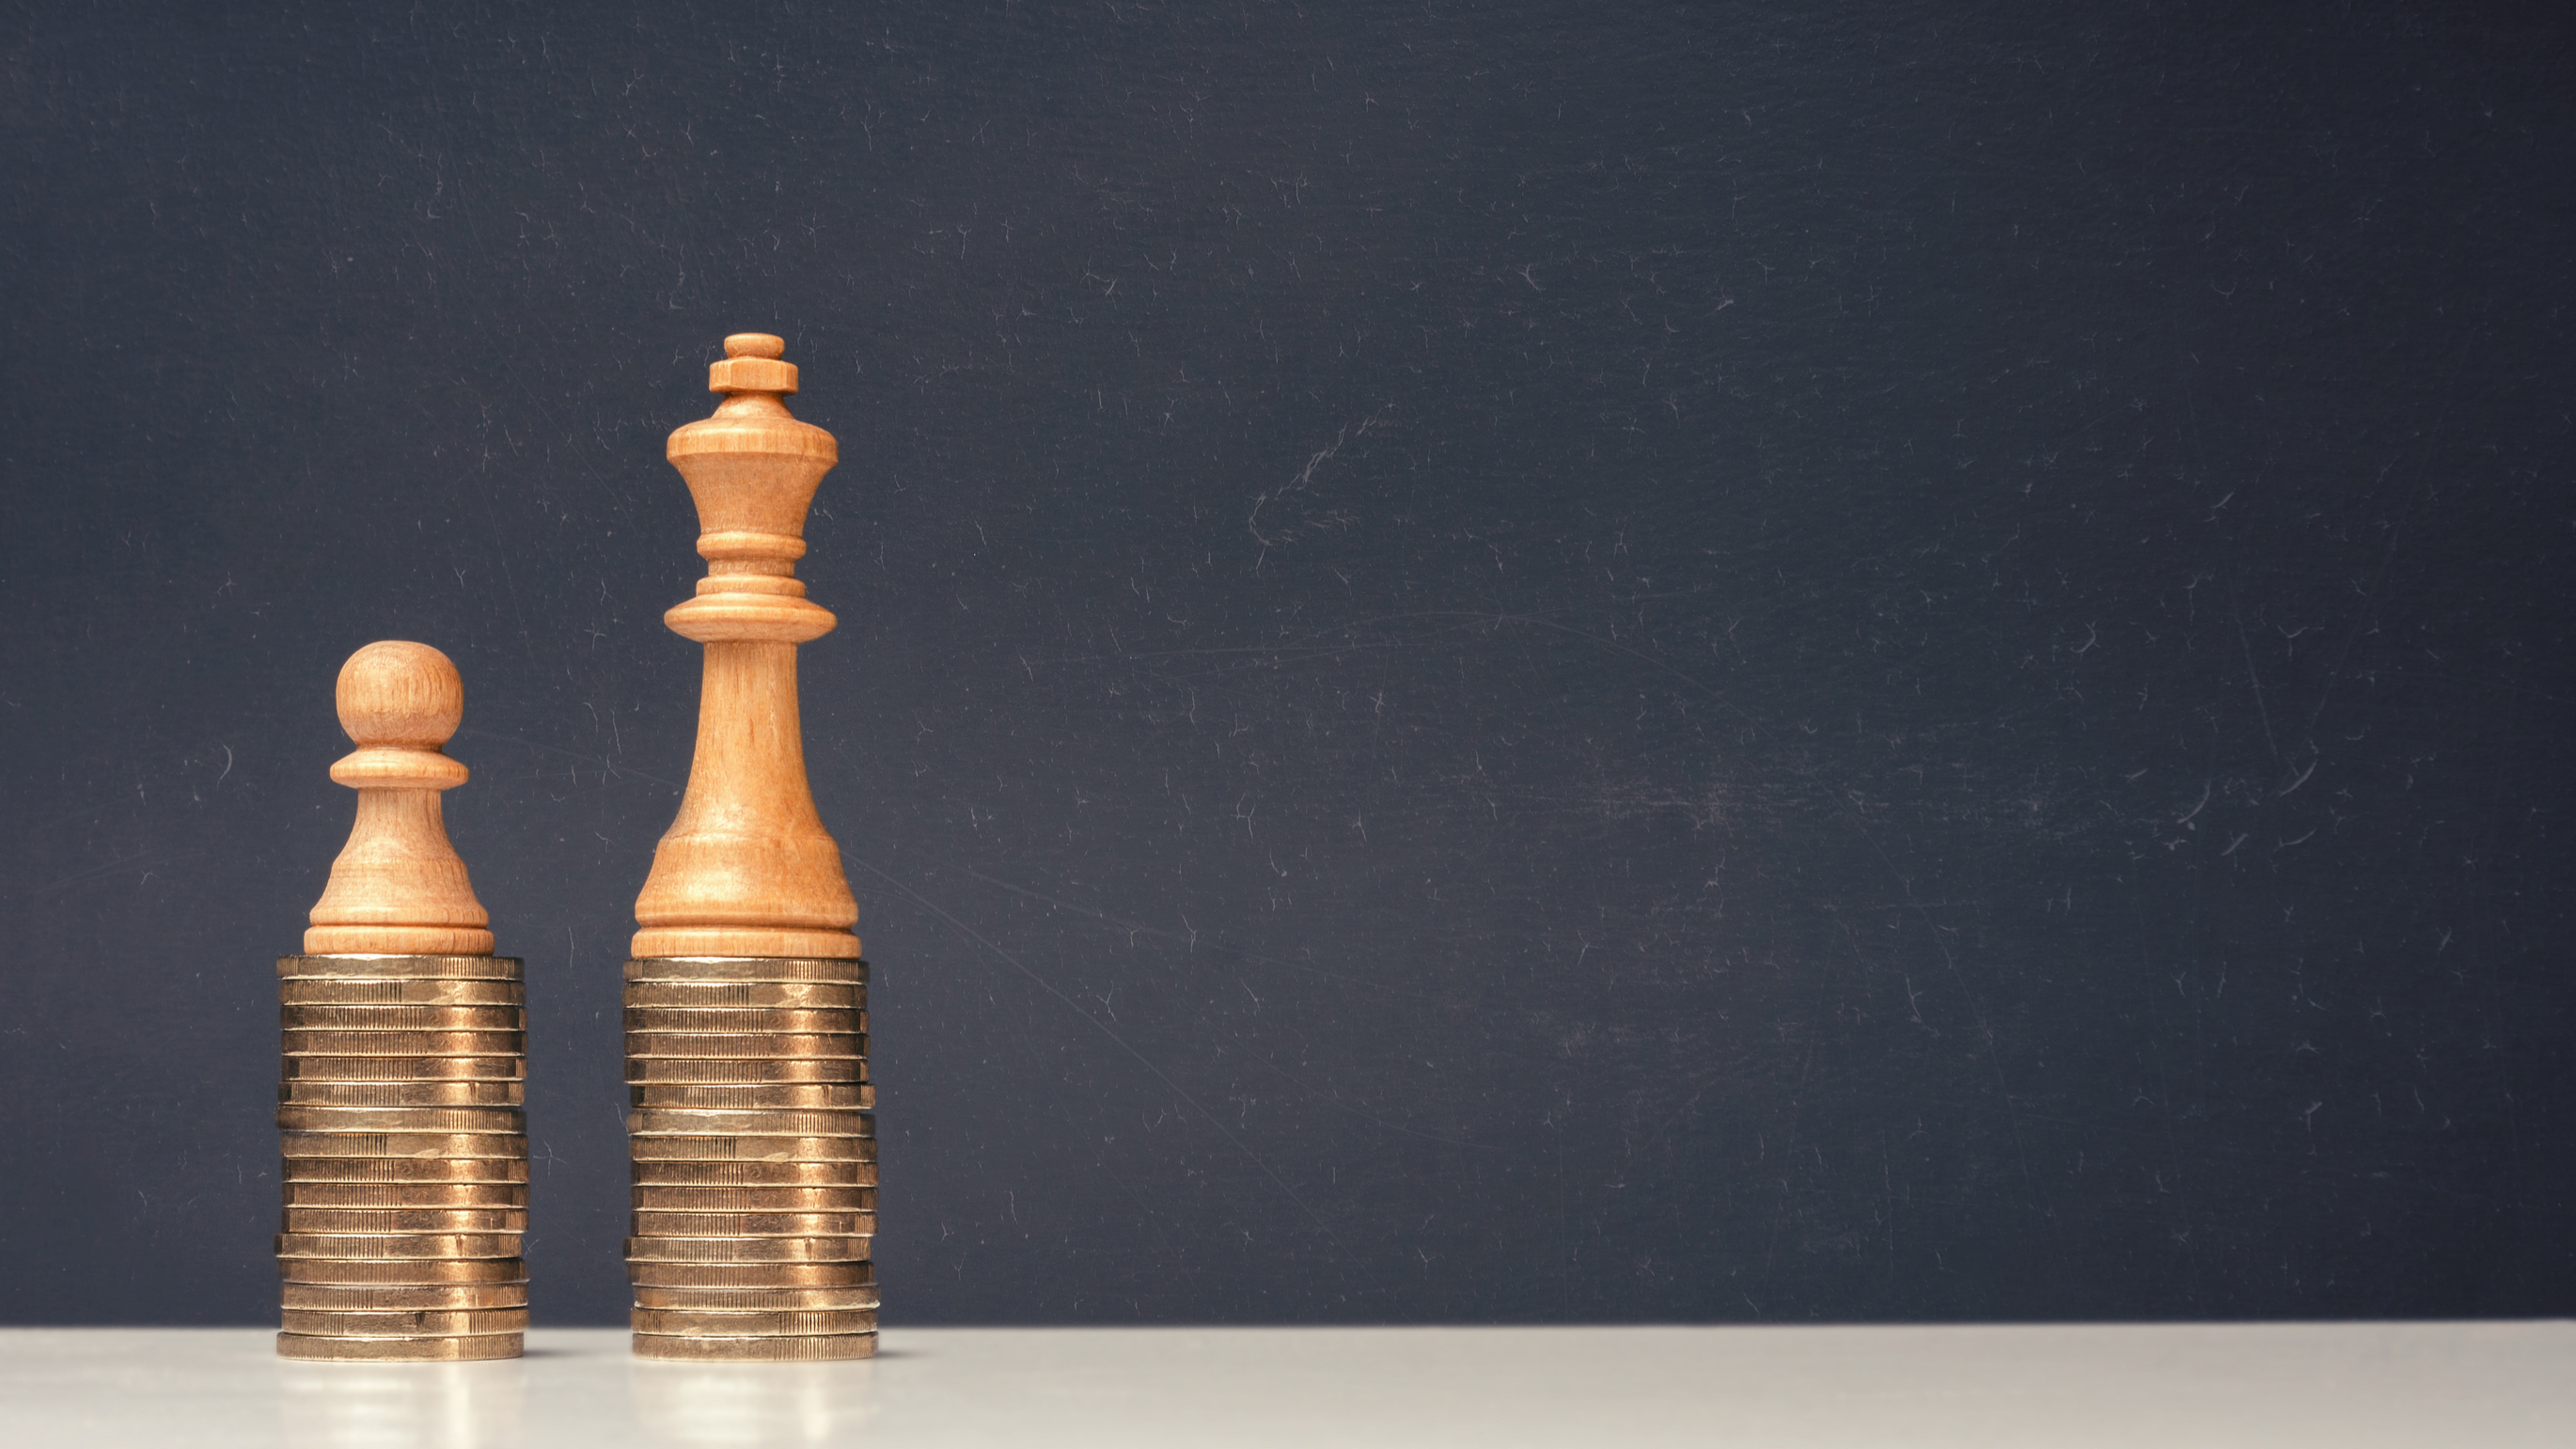 wonkhe_chess_inequality_income